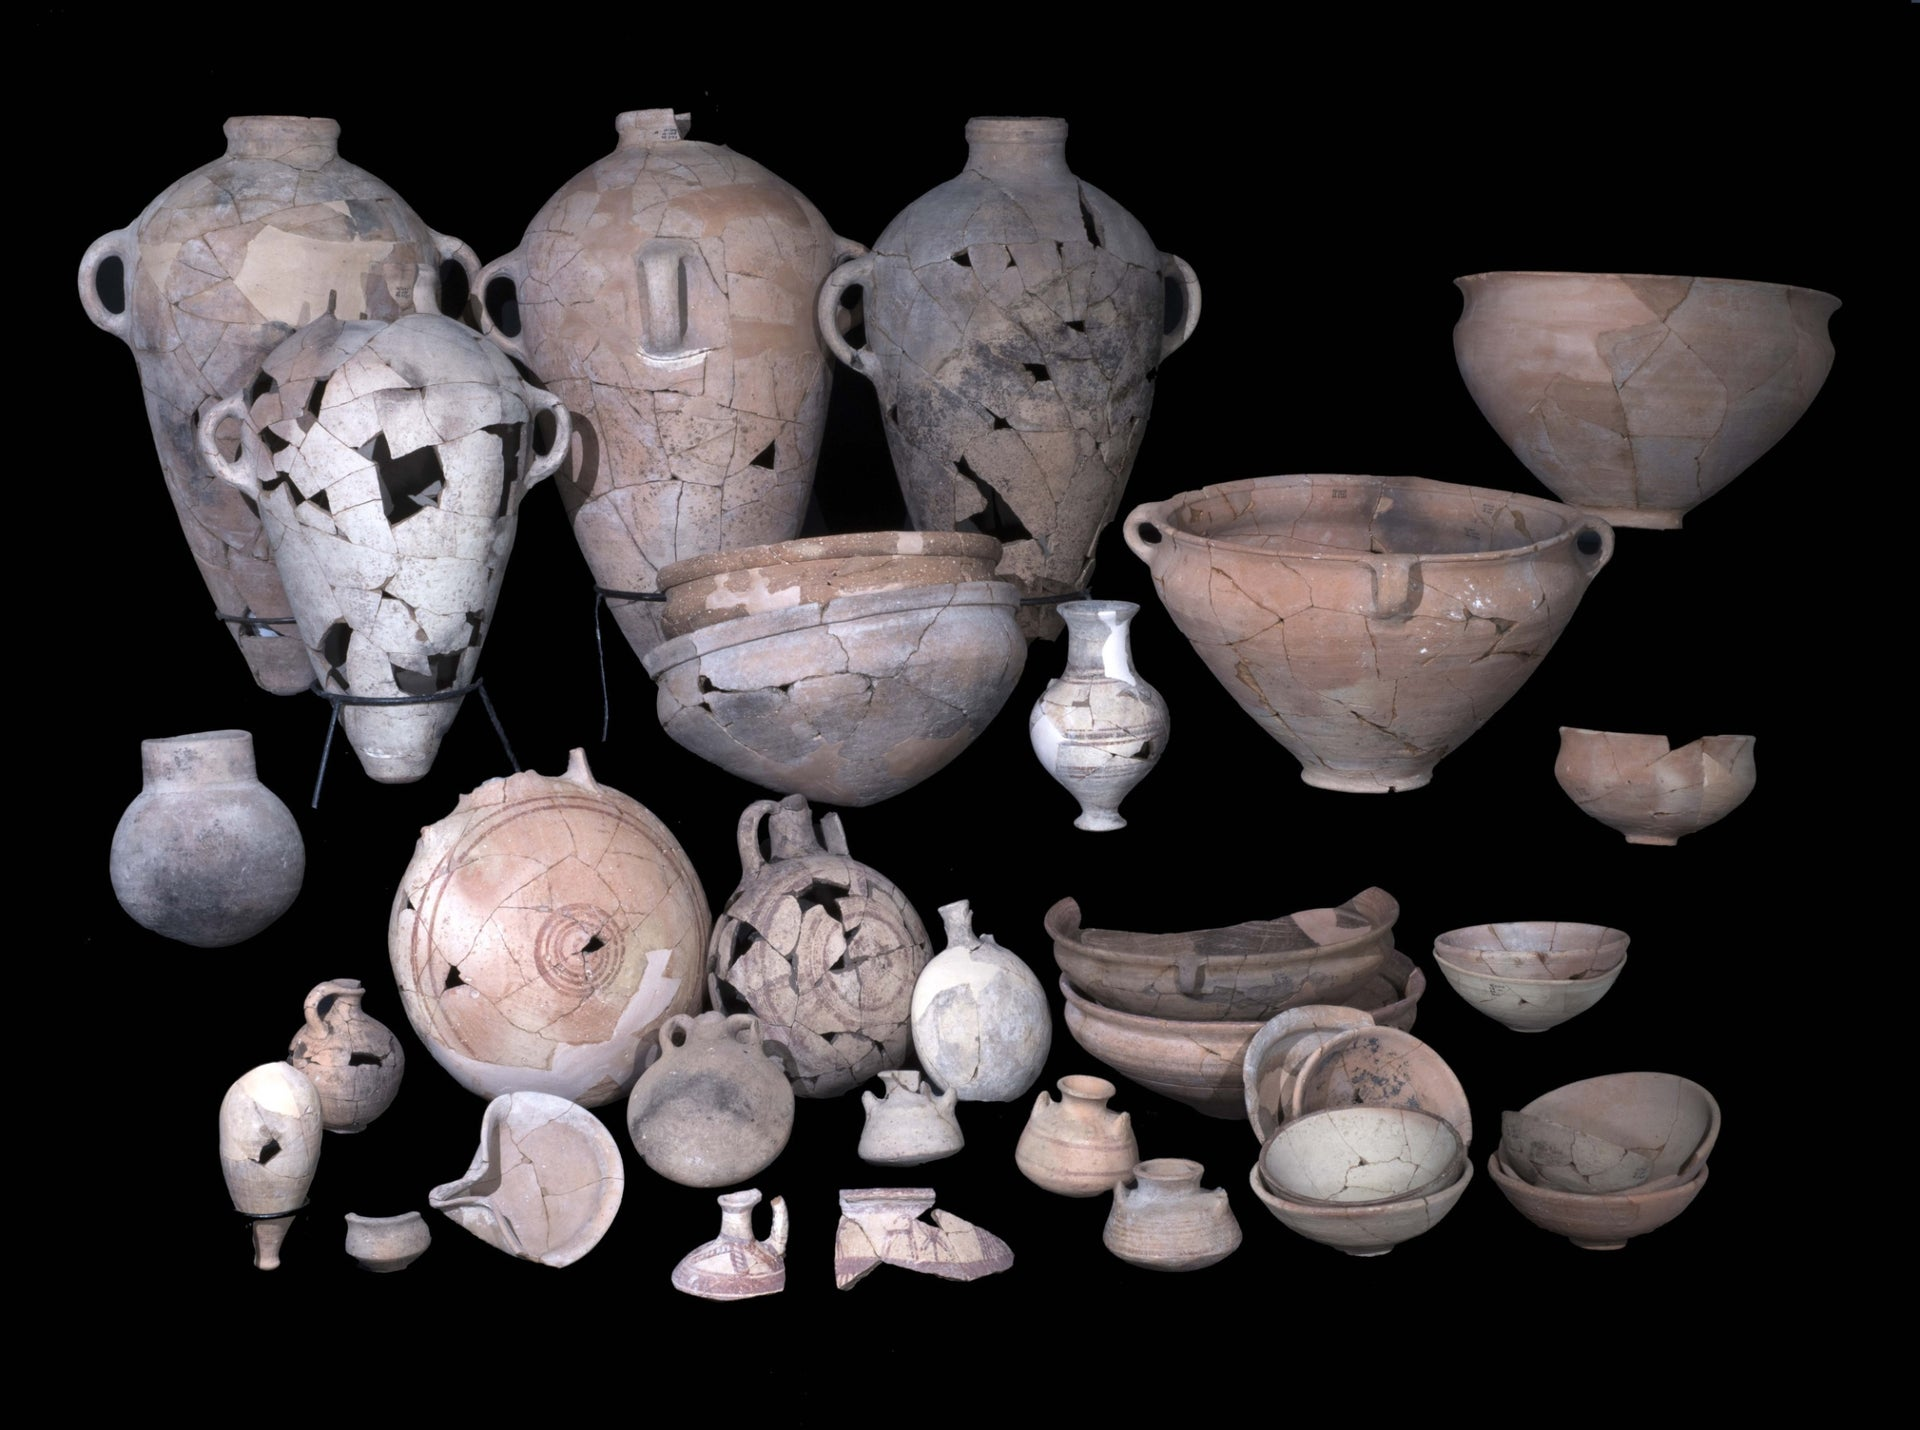 Pottery uncovered in the Canaanite temple, Lachish